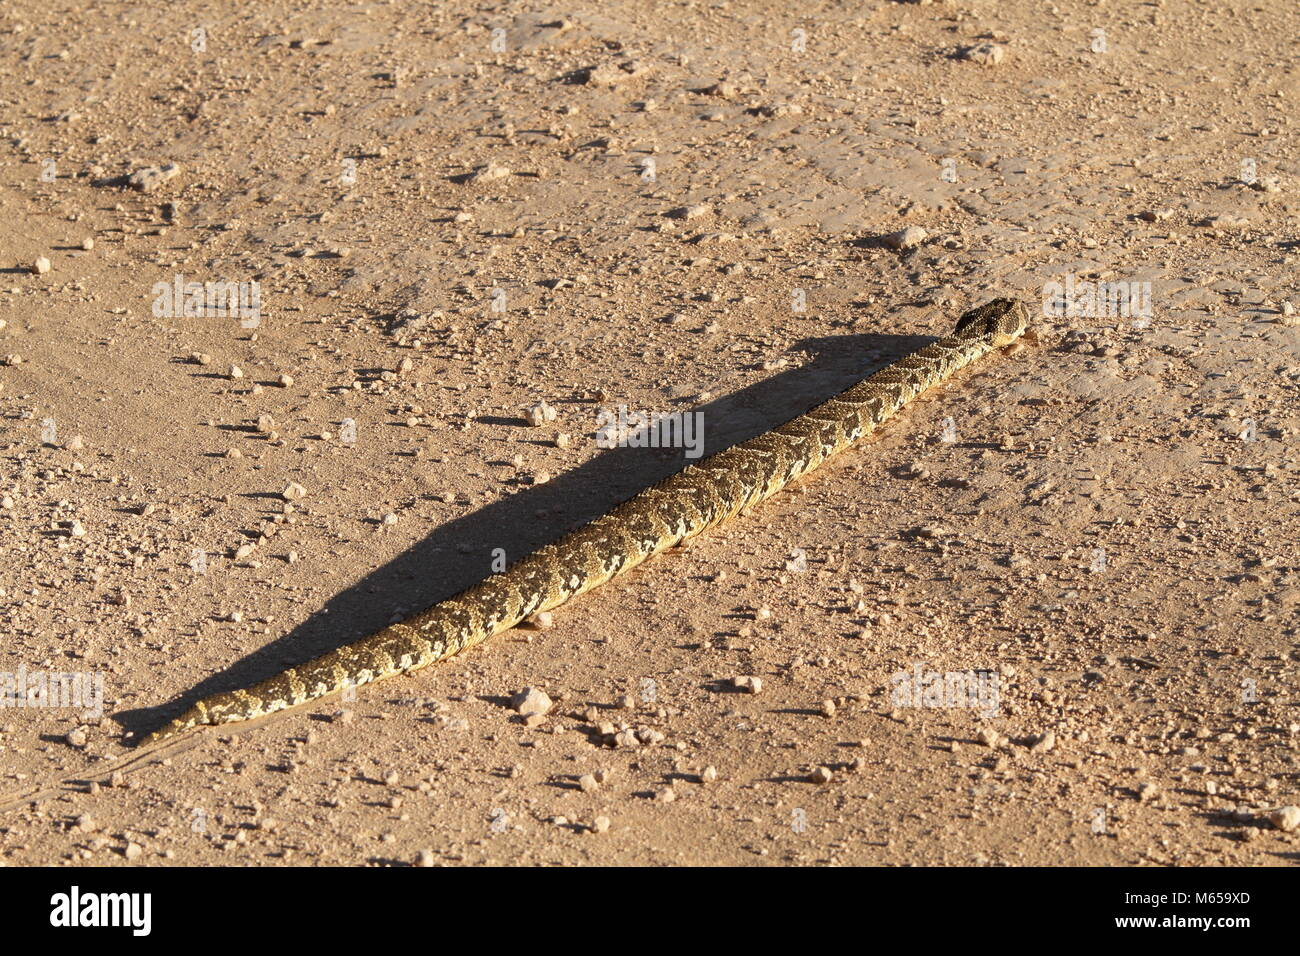 Puff Adder Crossing the Road - Stock Image